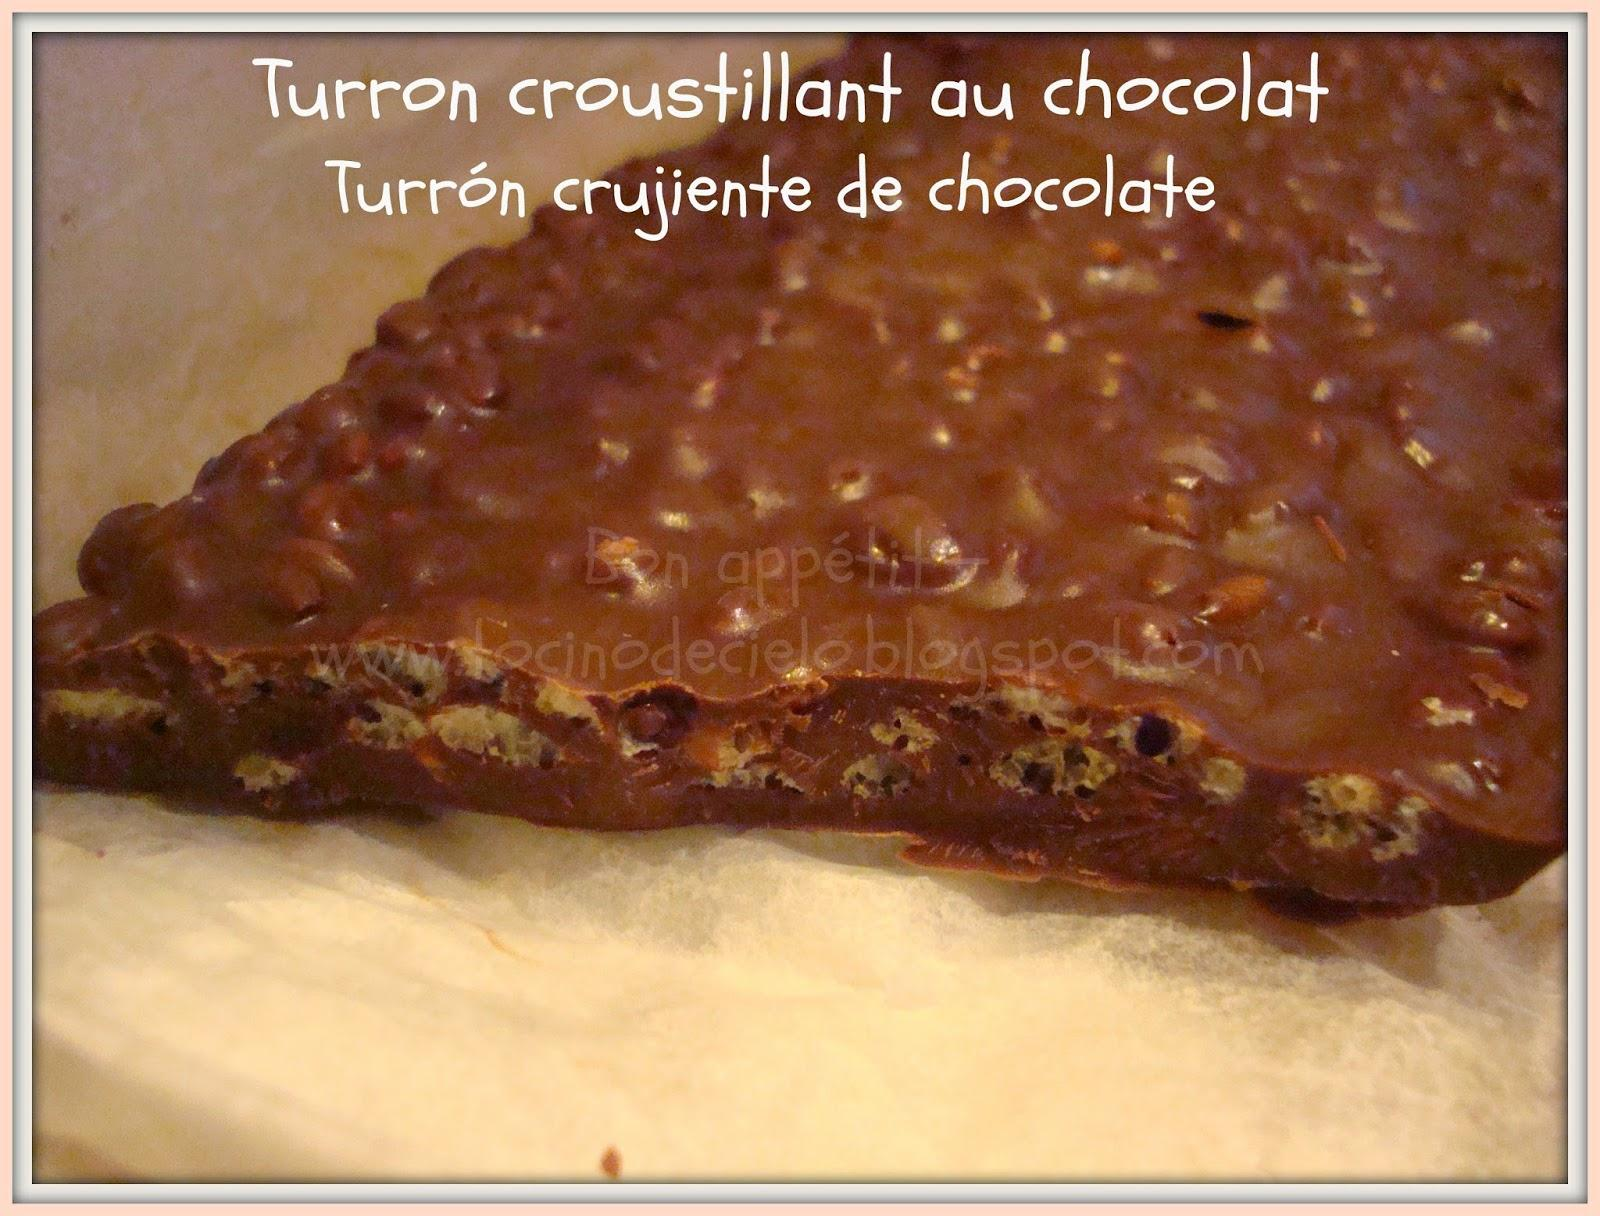 turron croustillant au chocolat thermomix turr n crujiente de chocolate tipo suchard. Black Bedroom Furniture Sets. Home Design Ideas